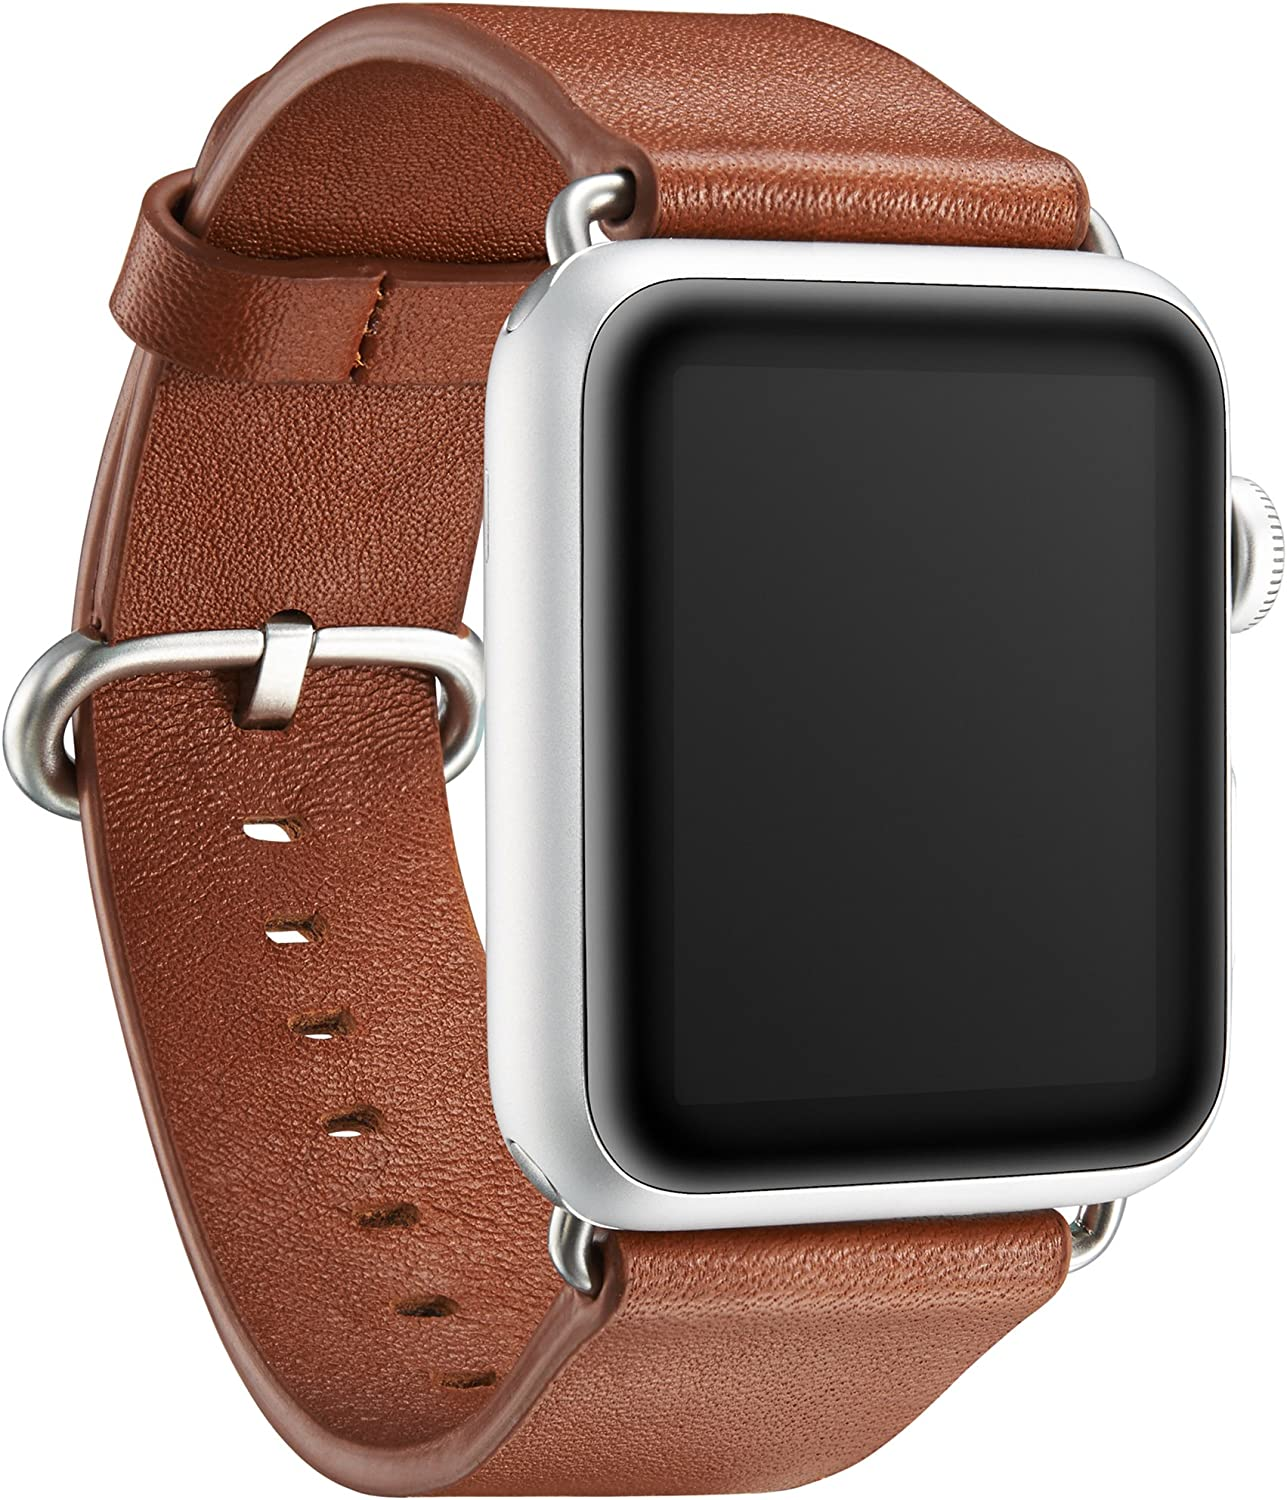 """KAVAJ genuine leather watch band """"Barcelona"""" compatible with Apple Watch Series 6 5 4 3 2 1, 42/44mm in cognac-brown. Genuine leather replacement watch strap with classic buckle"""